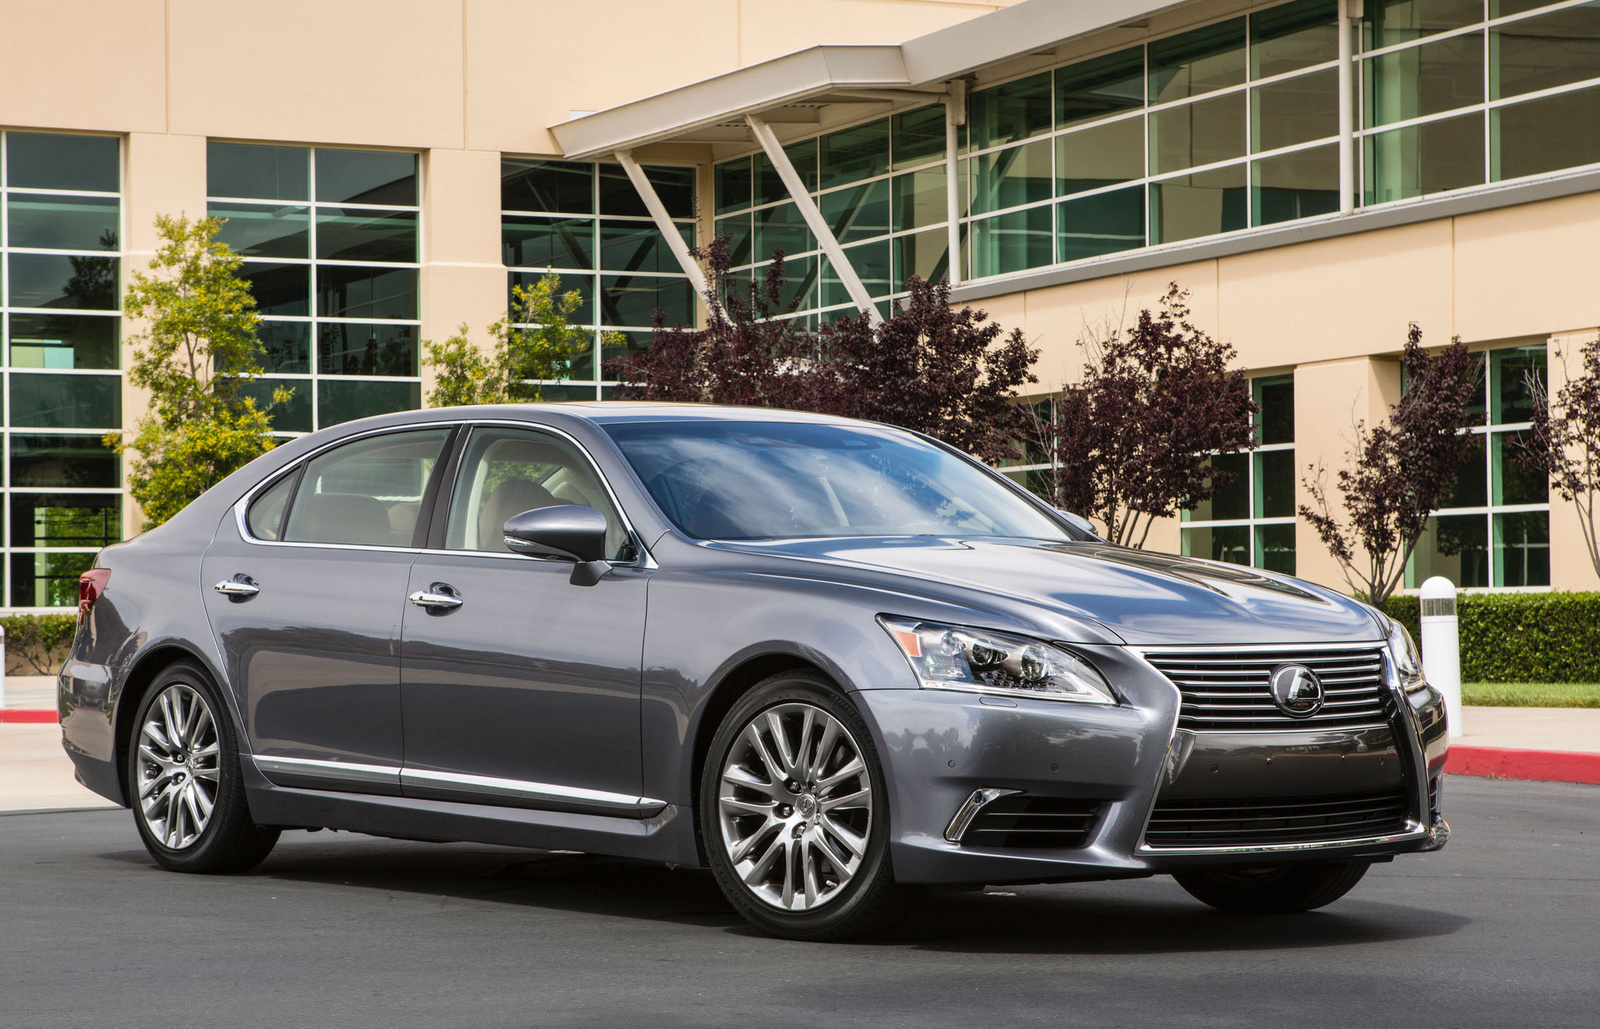 2015 Lexus Ls 460 Overview C24724 on new de tomaso car